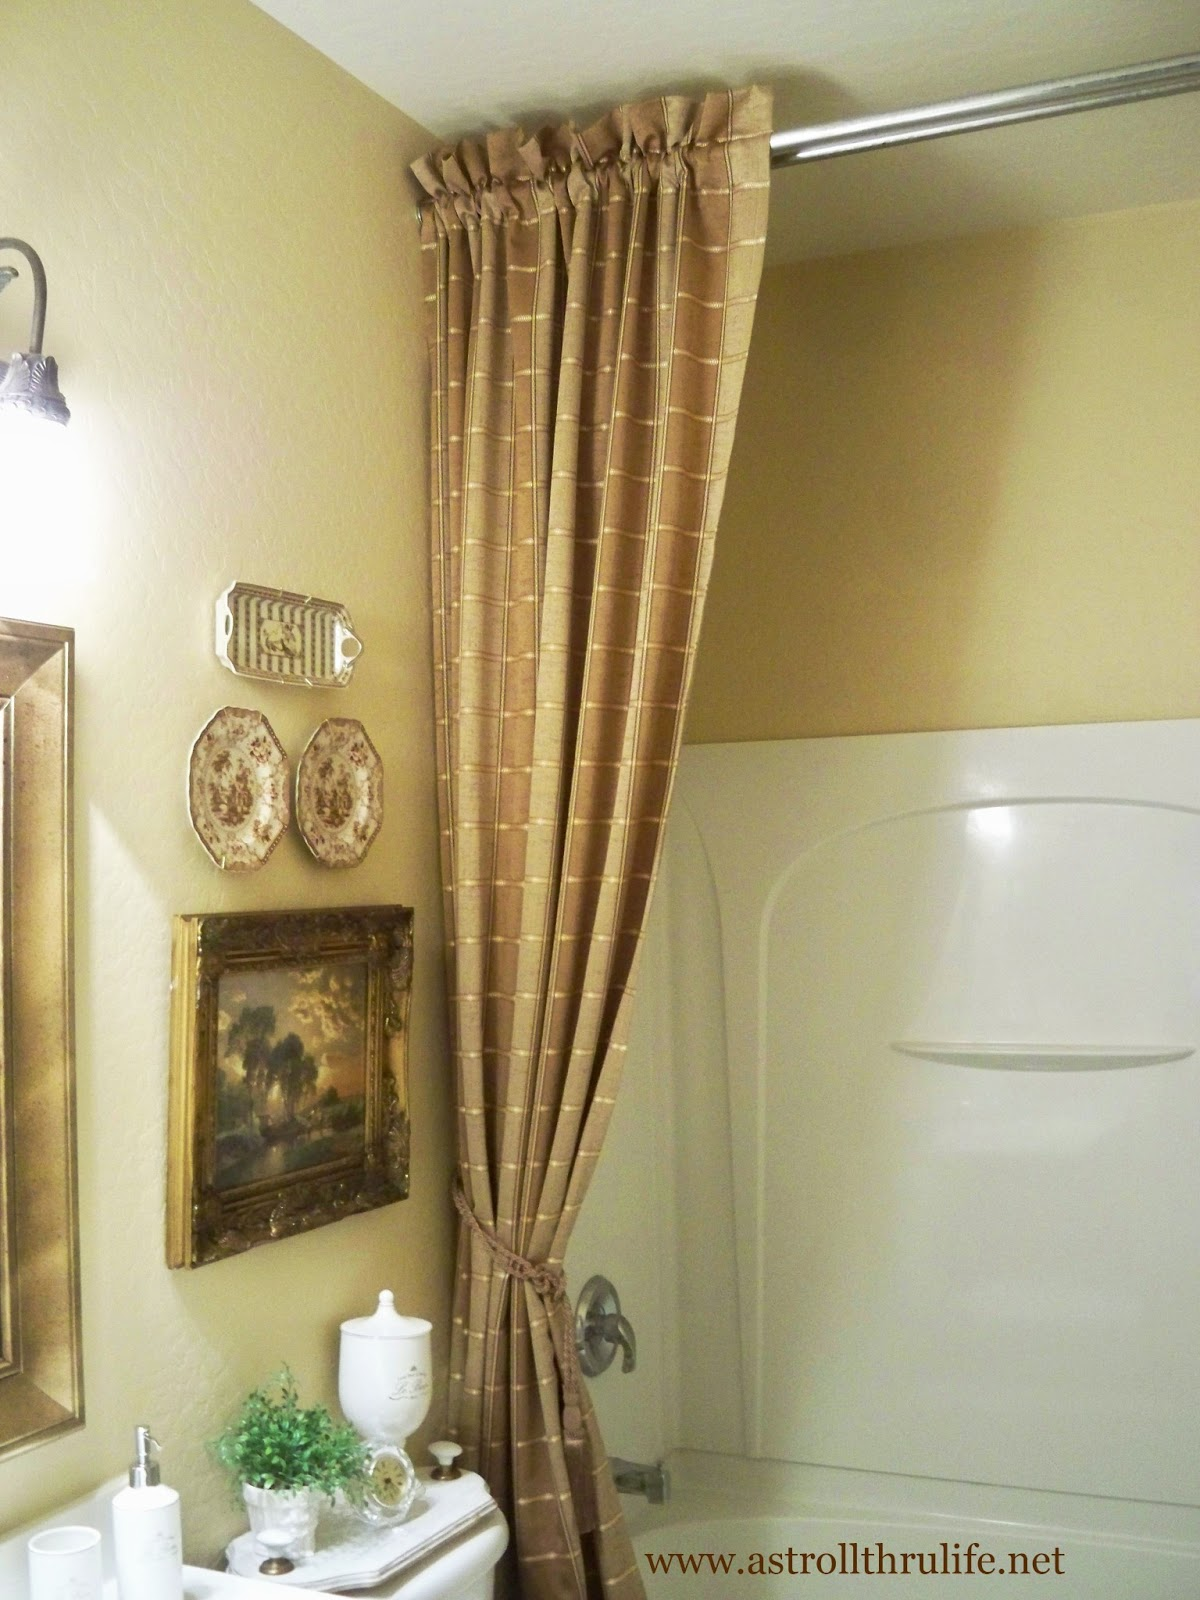 How To Make Shower Curtain 100 Bathrooms With Shower Curtains Curtains Waterproof Curtains